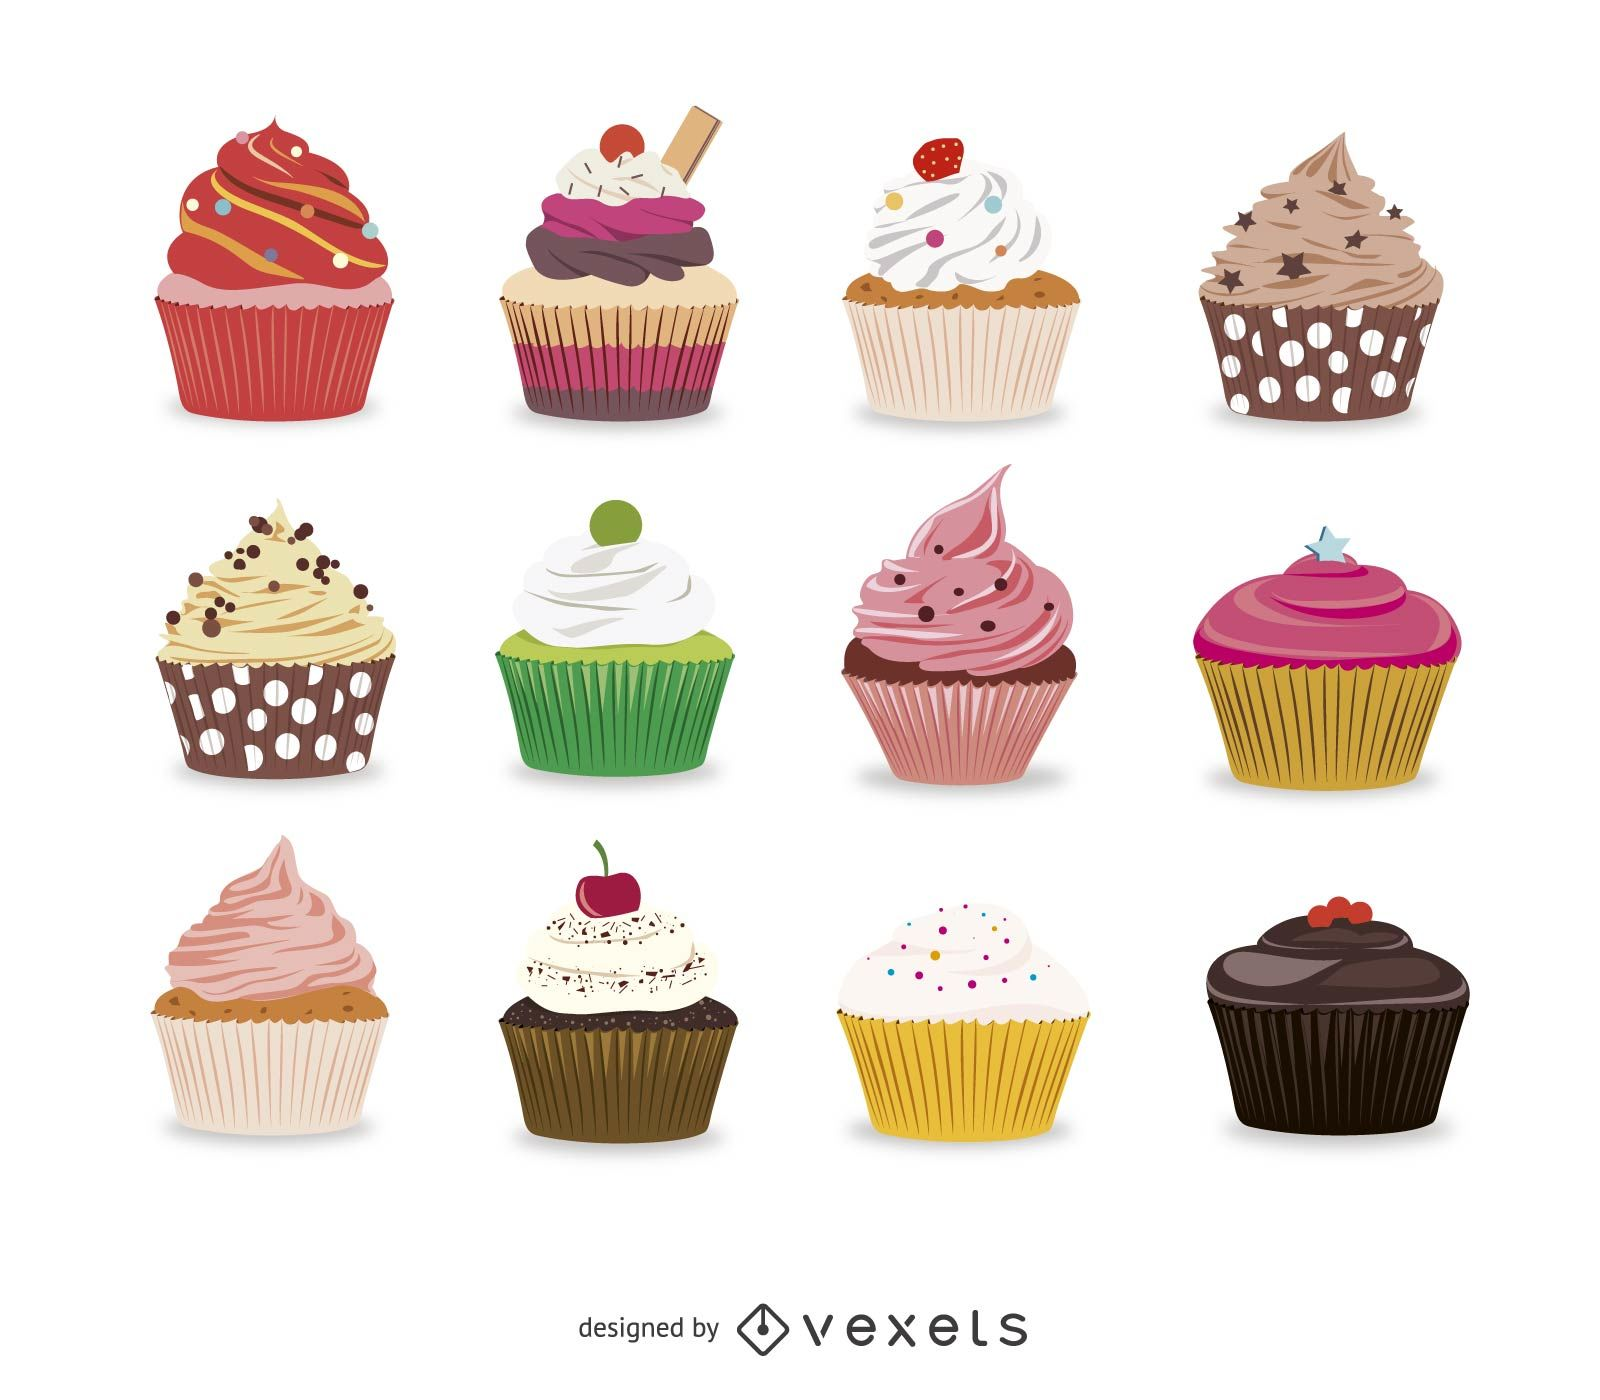 1600x1400 Collection Of Illustrated Cupcakes